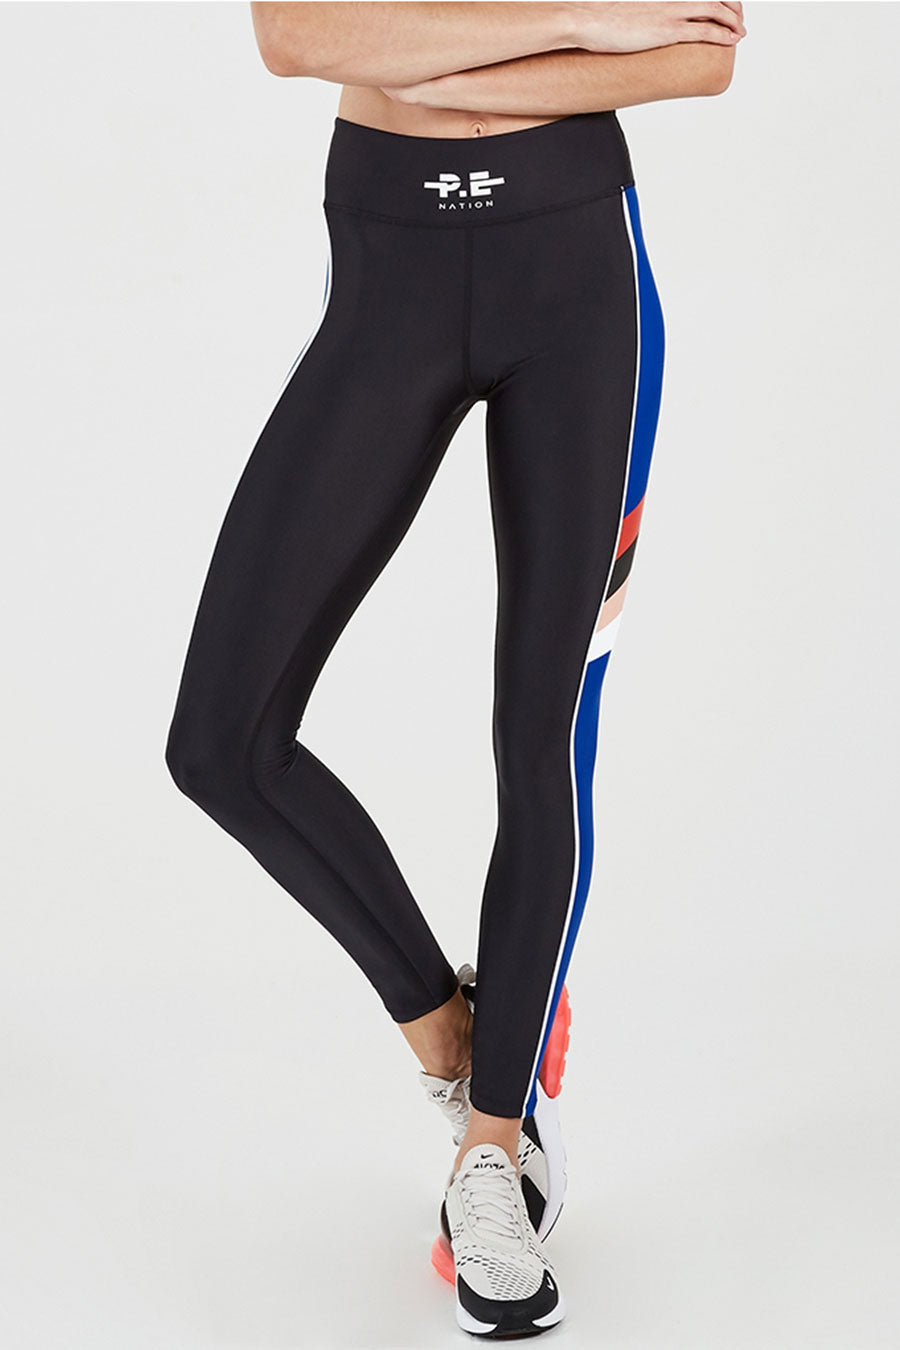 The Touchback Legging